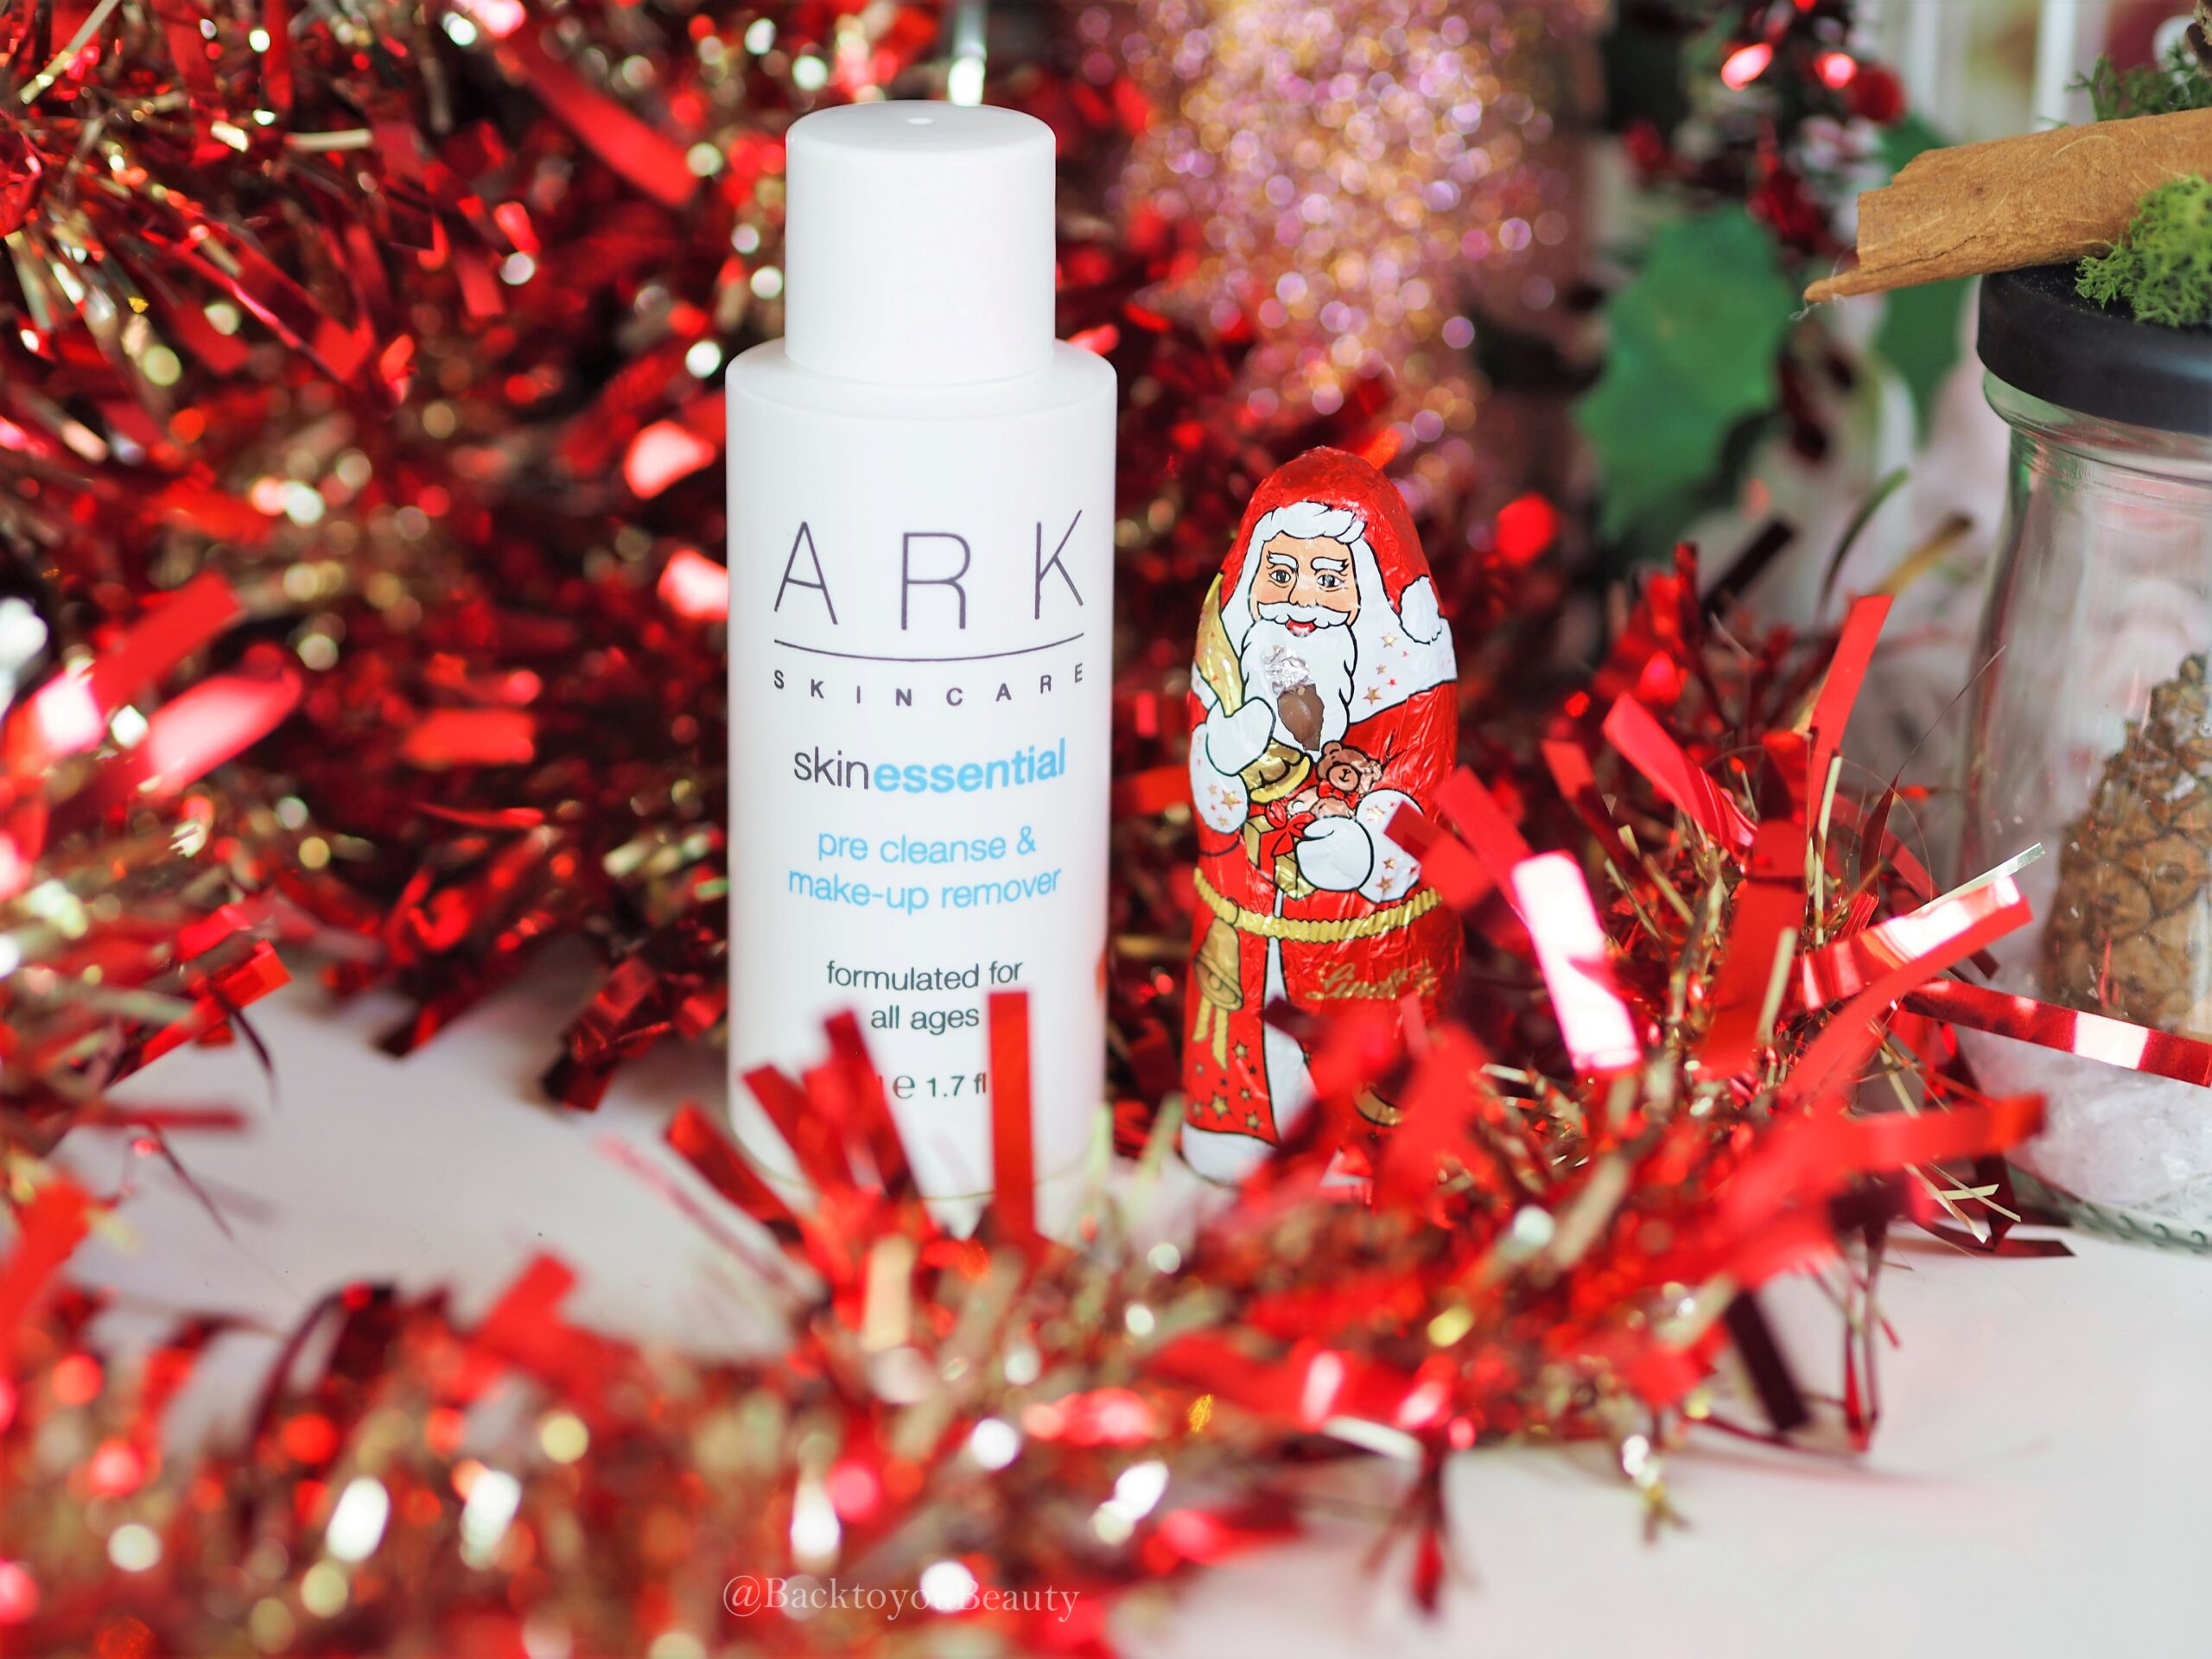 Ark Pre cleanse and make up remover